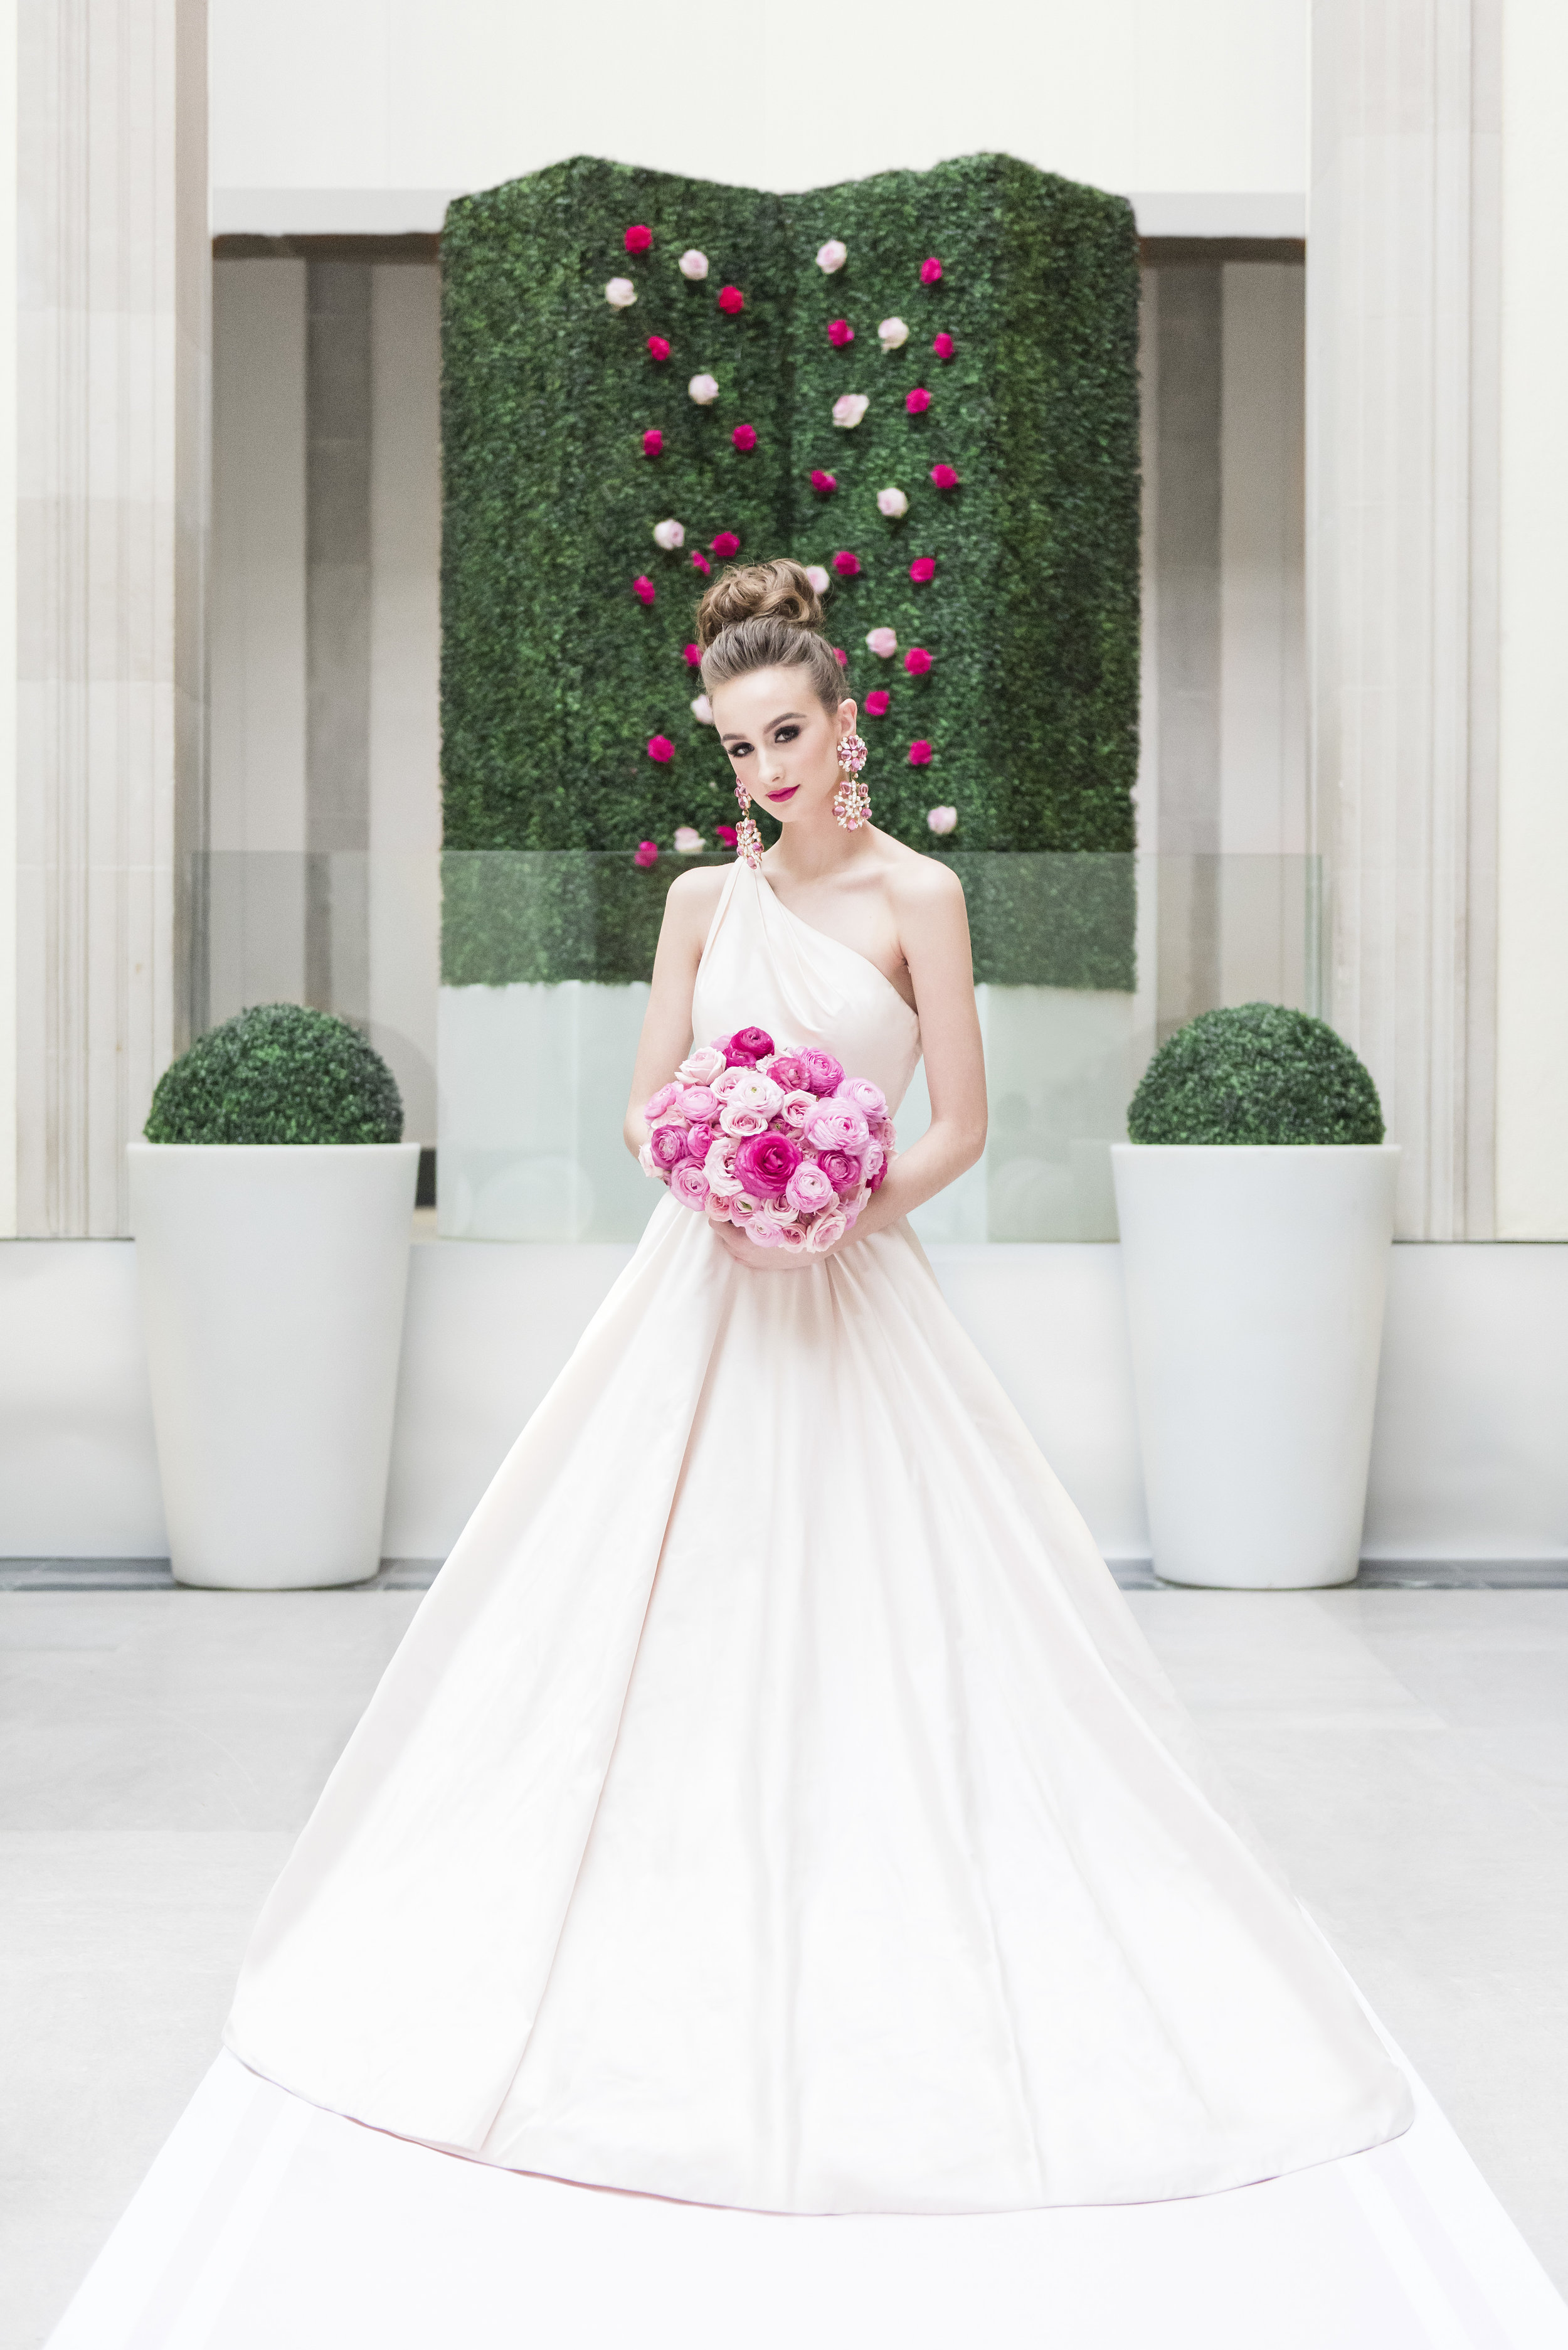 August In Bloom - Bride in Dior Gown with Pink Bouquet -Dior Darling